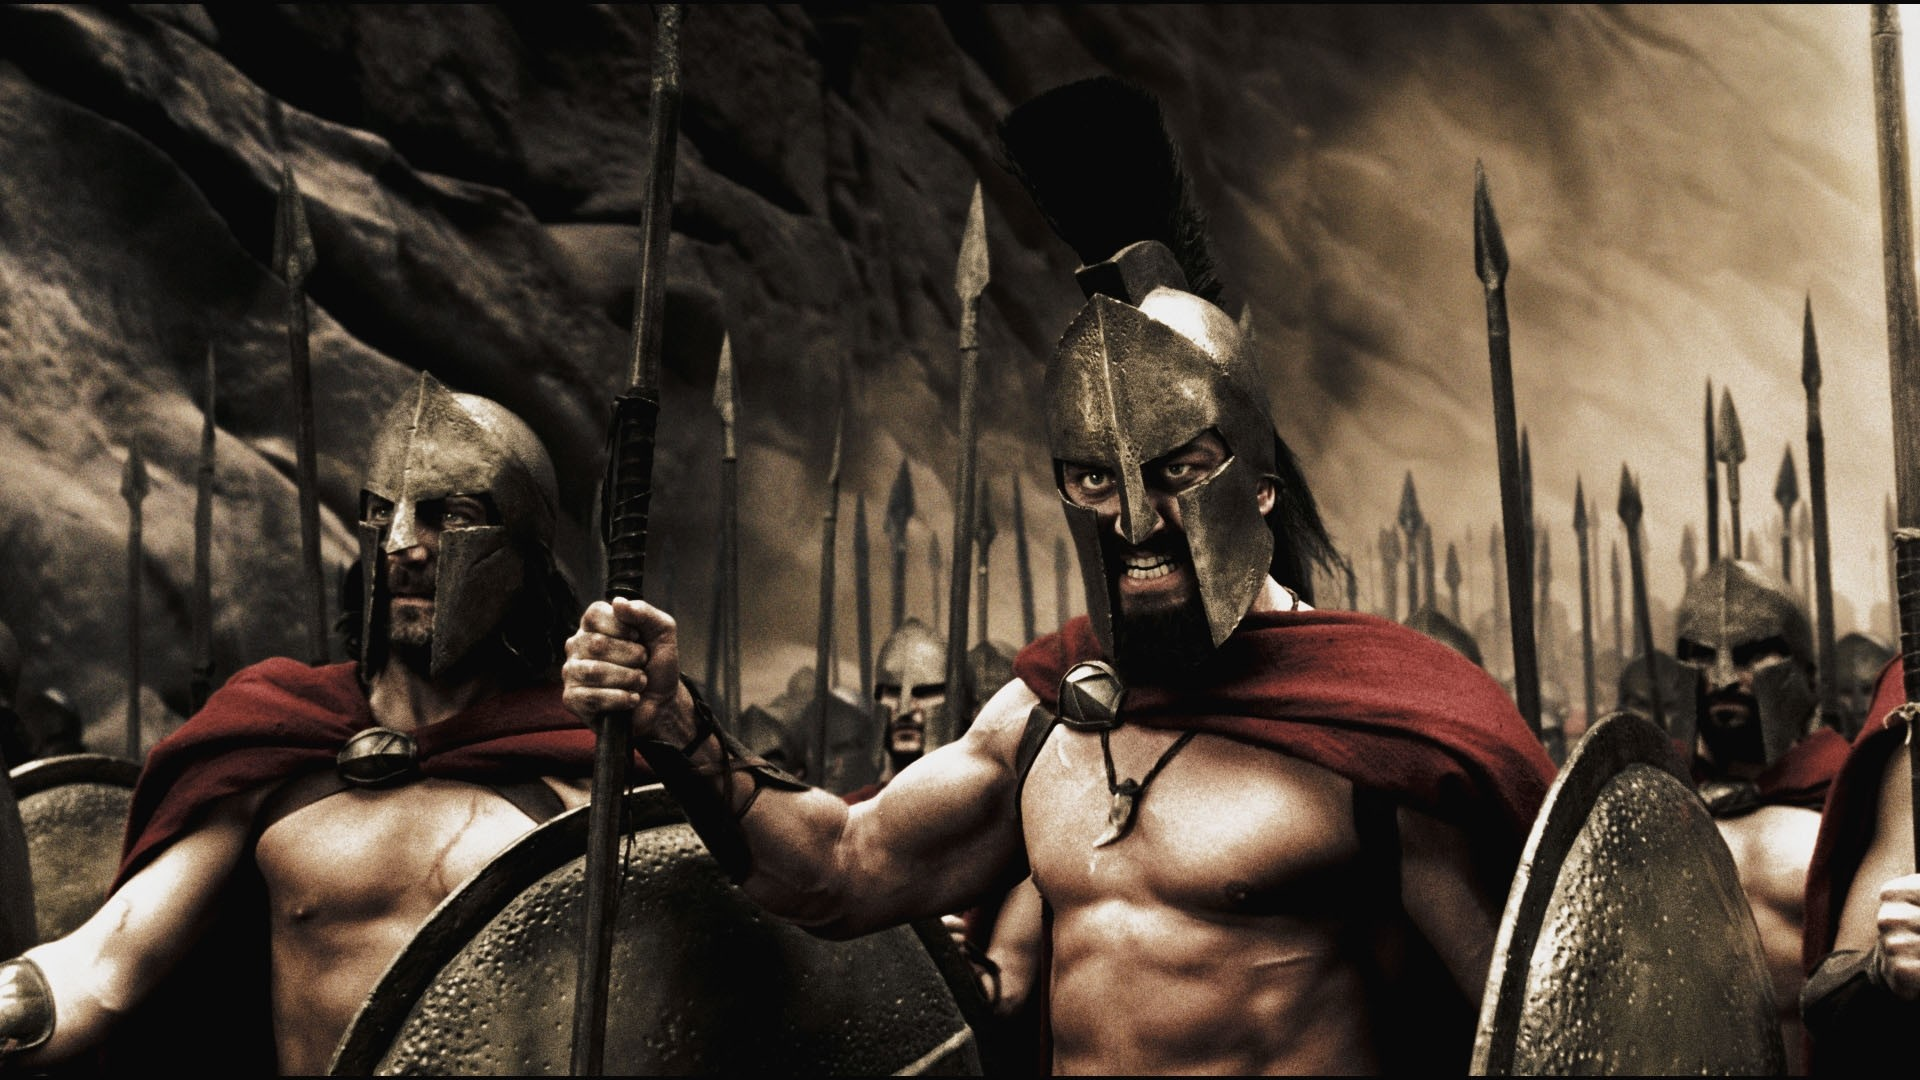 Warriors Spartans 300 Killers Strong Man [1920×1080] Need #iPhone #6S #Plus